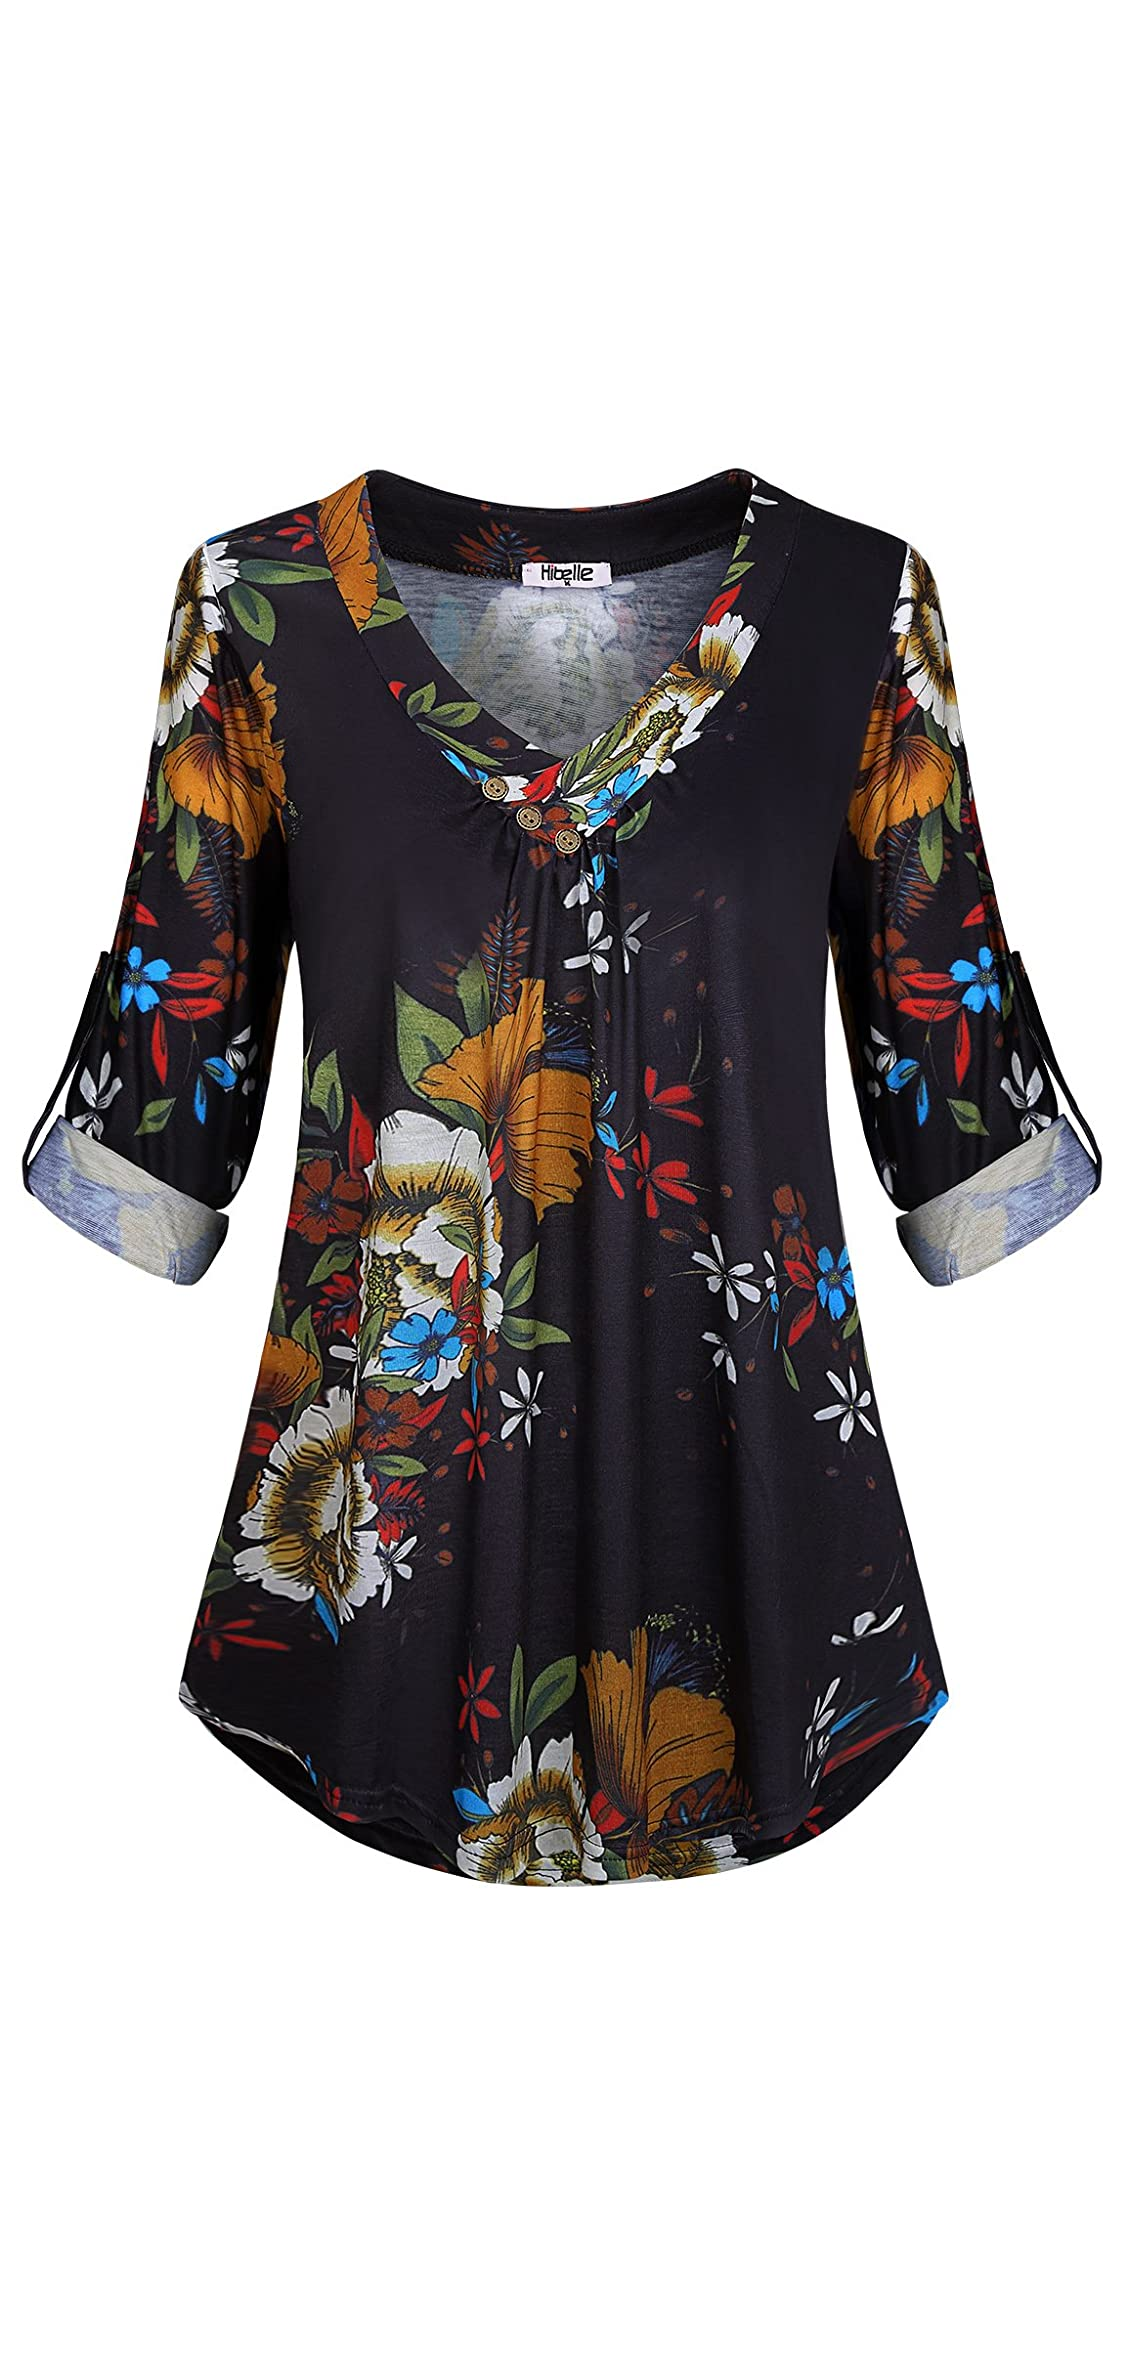 Women's Roll-up Long Sleeve V-neck Casual Flowy Tunic